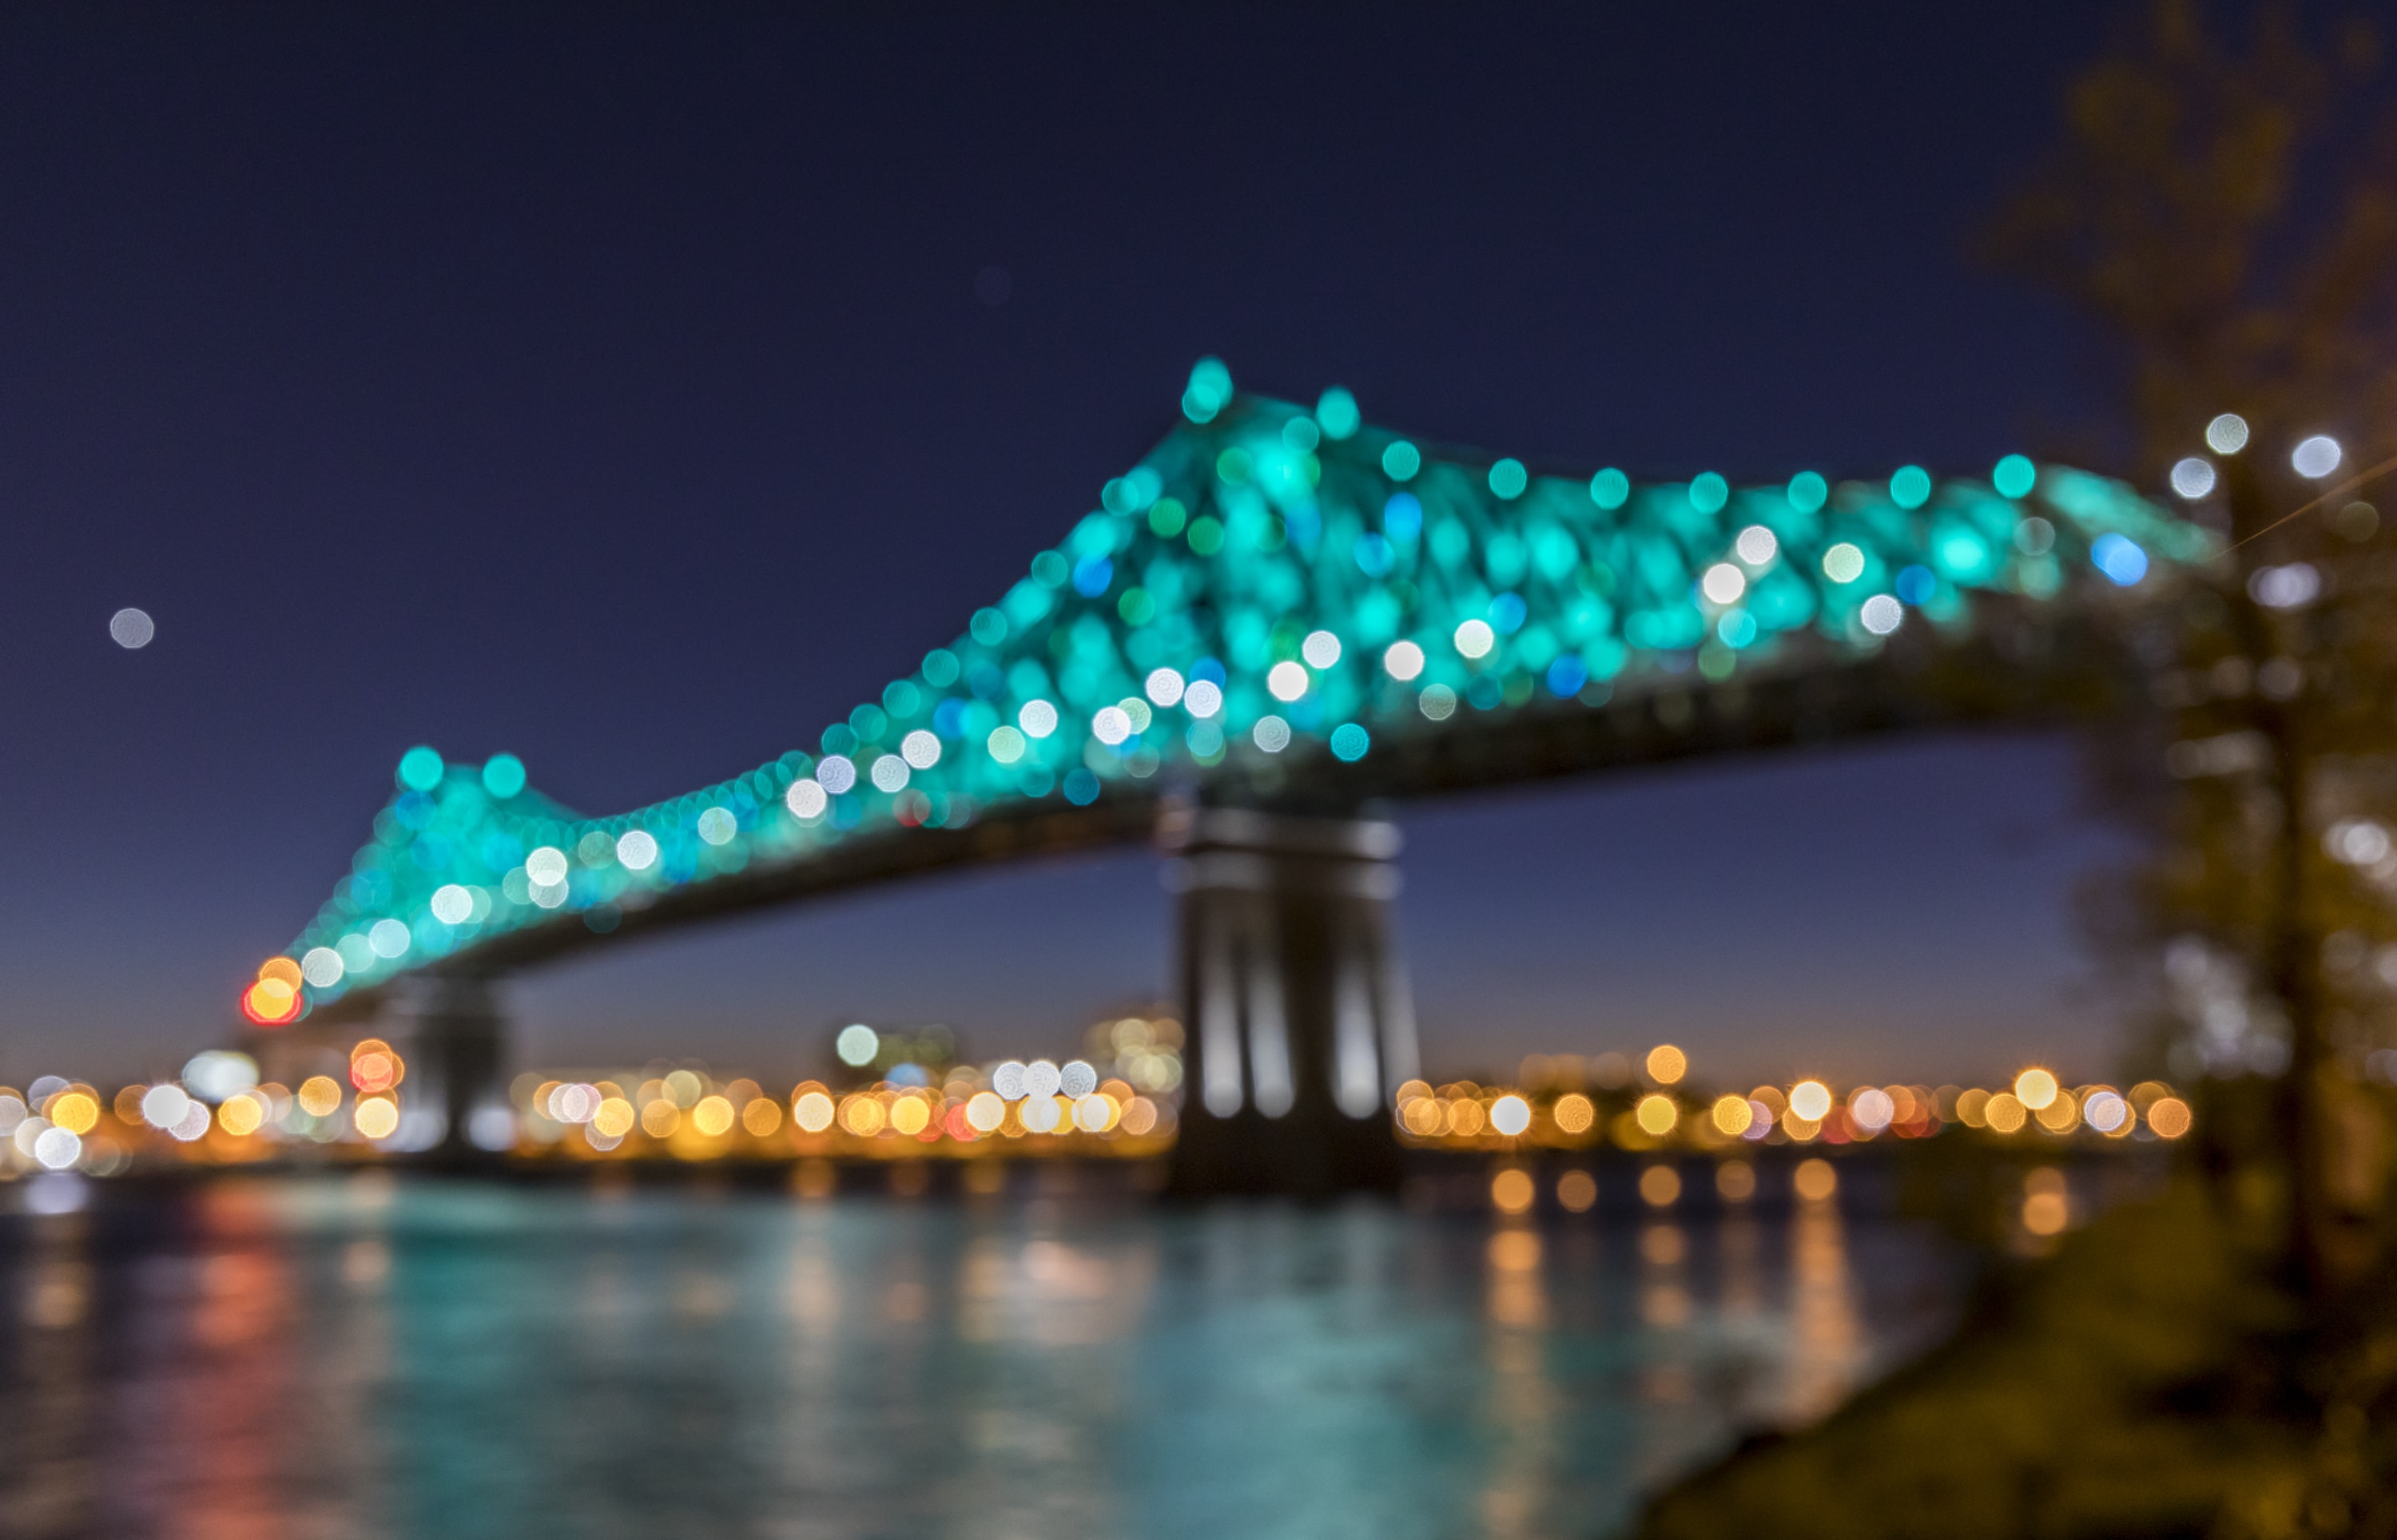 suspension bridge with teal lights during nighttime